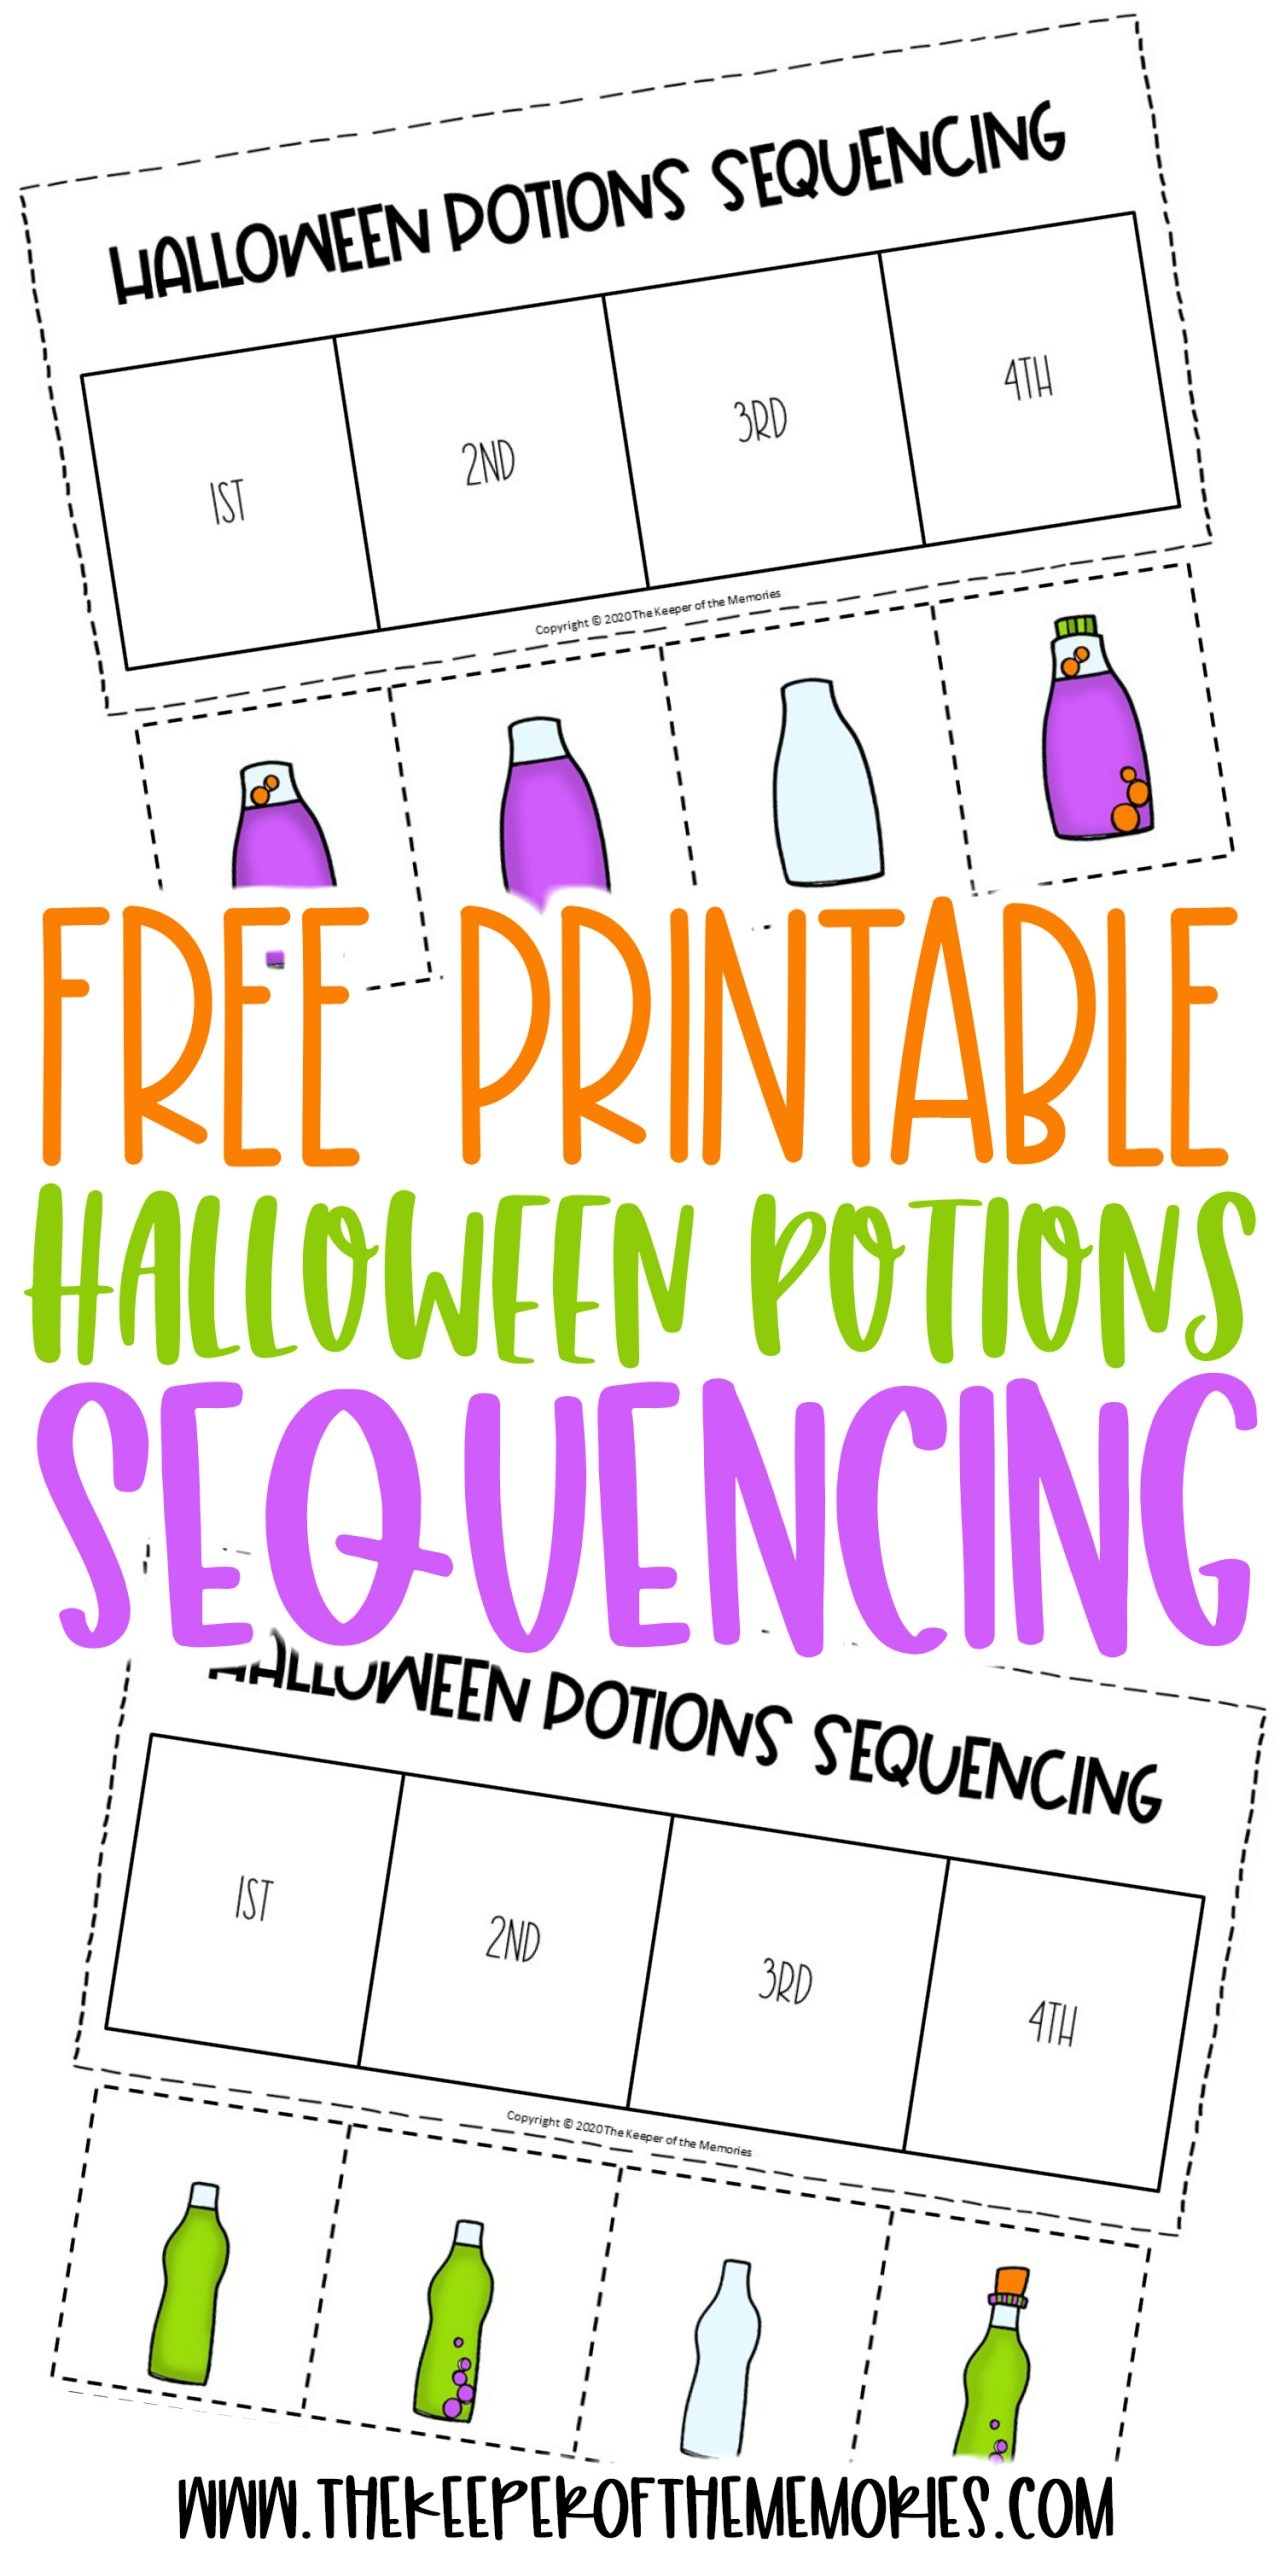 Free Printable Potions Sequencing Halloween Preschool